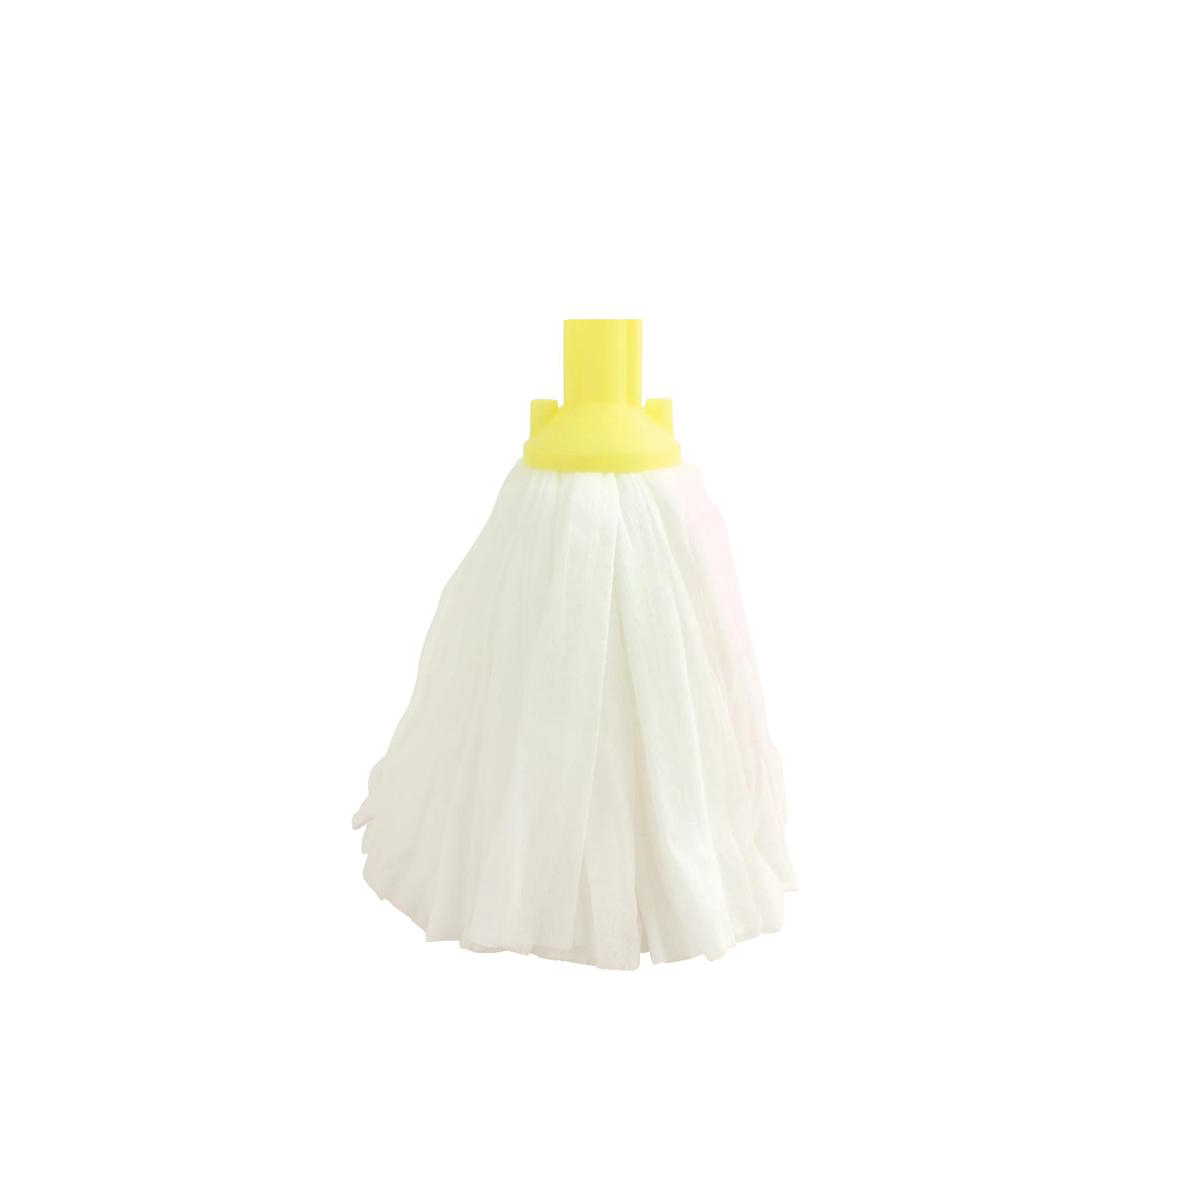 Bentley Disposable Socket Mop Head 120g Yellow Ref Spc Dsm120 Y